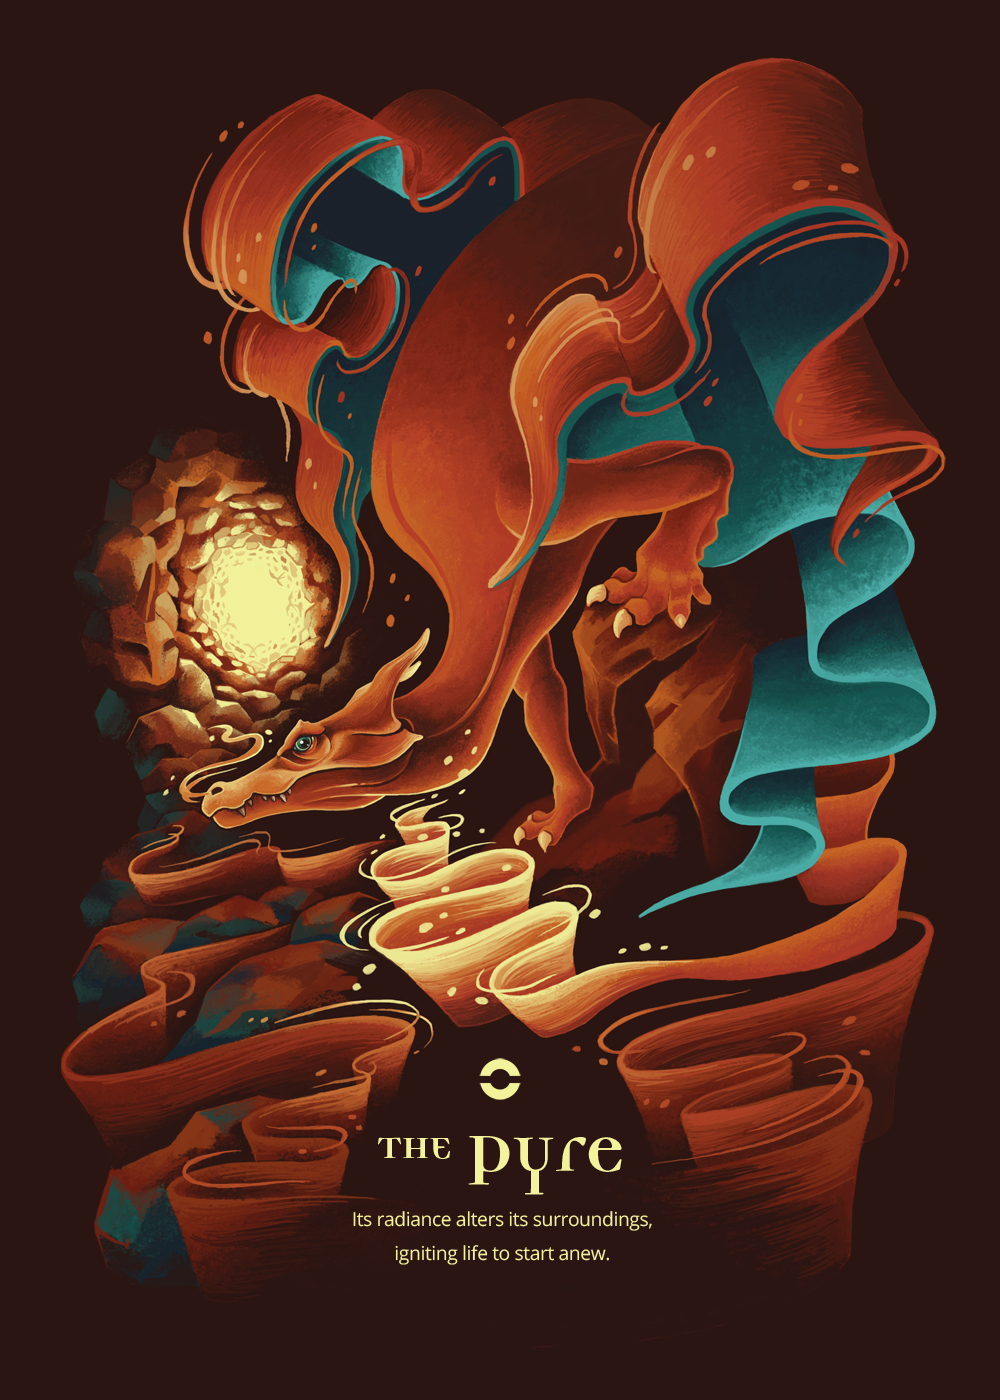 Red: The Pyre by Noktowl